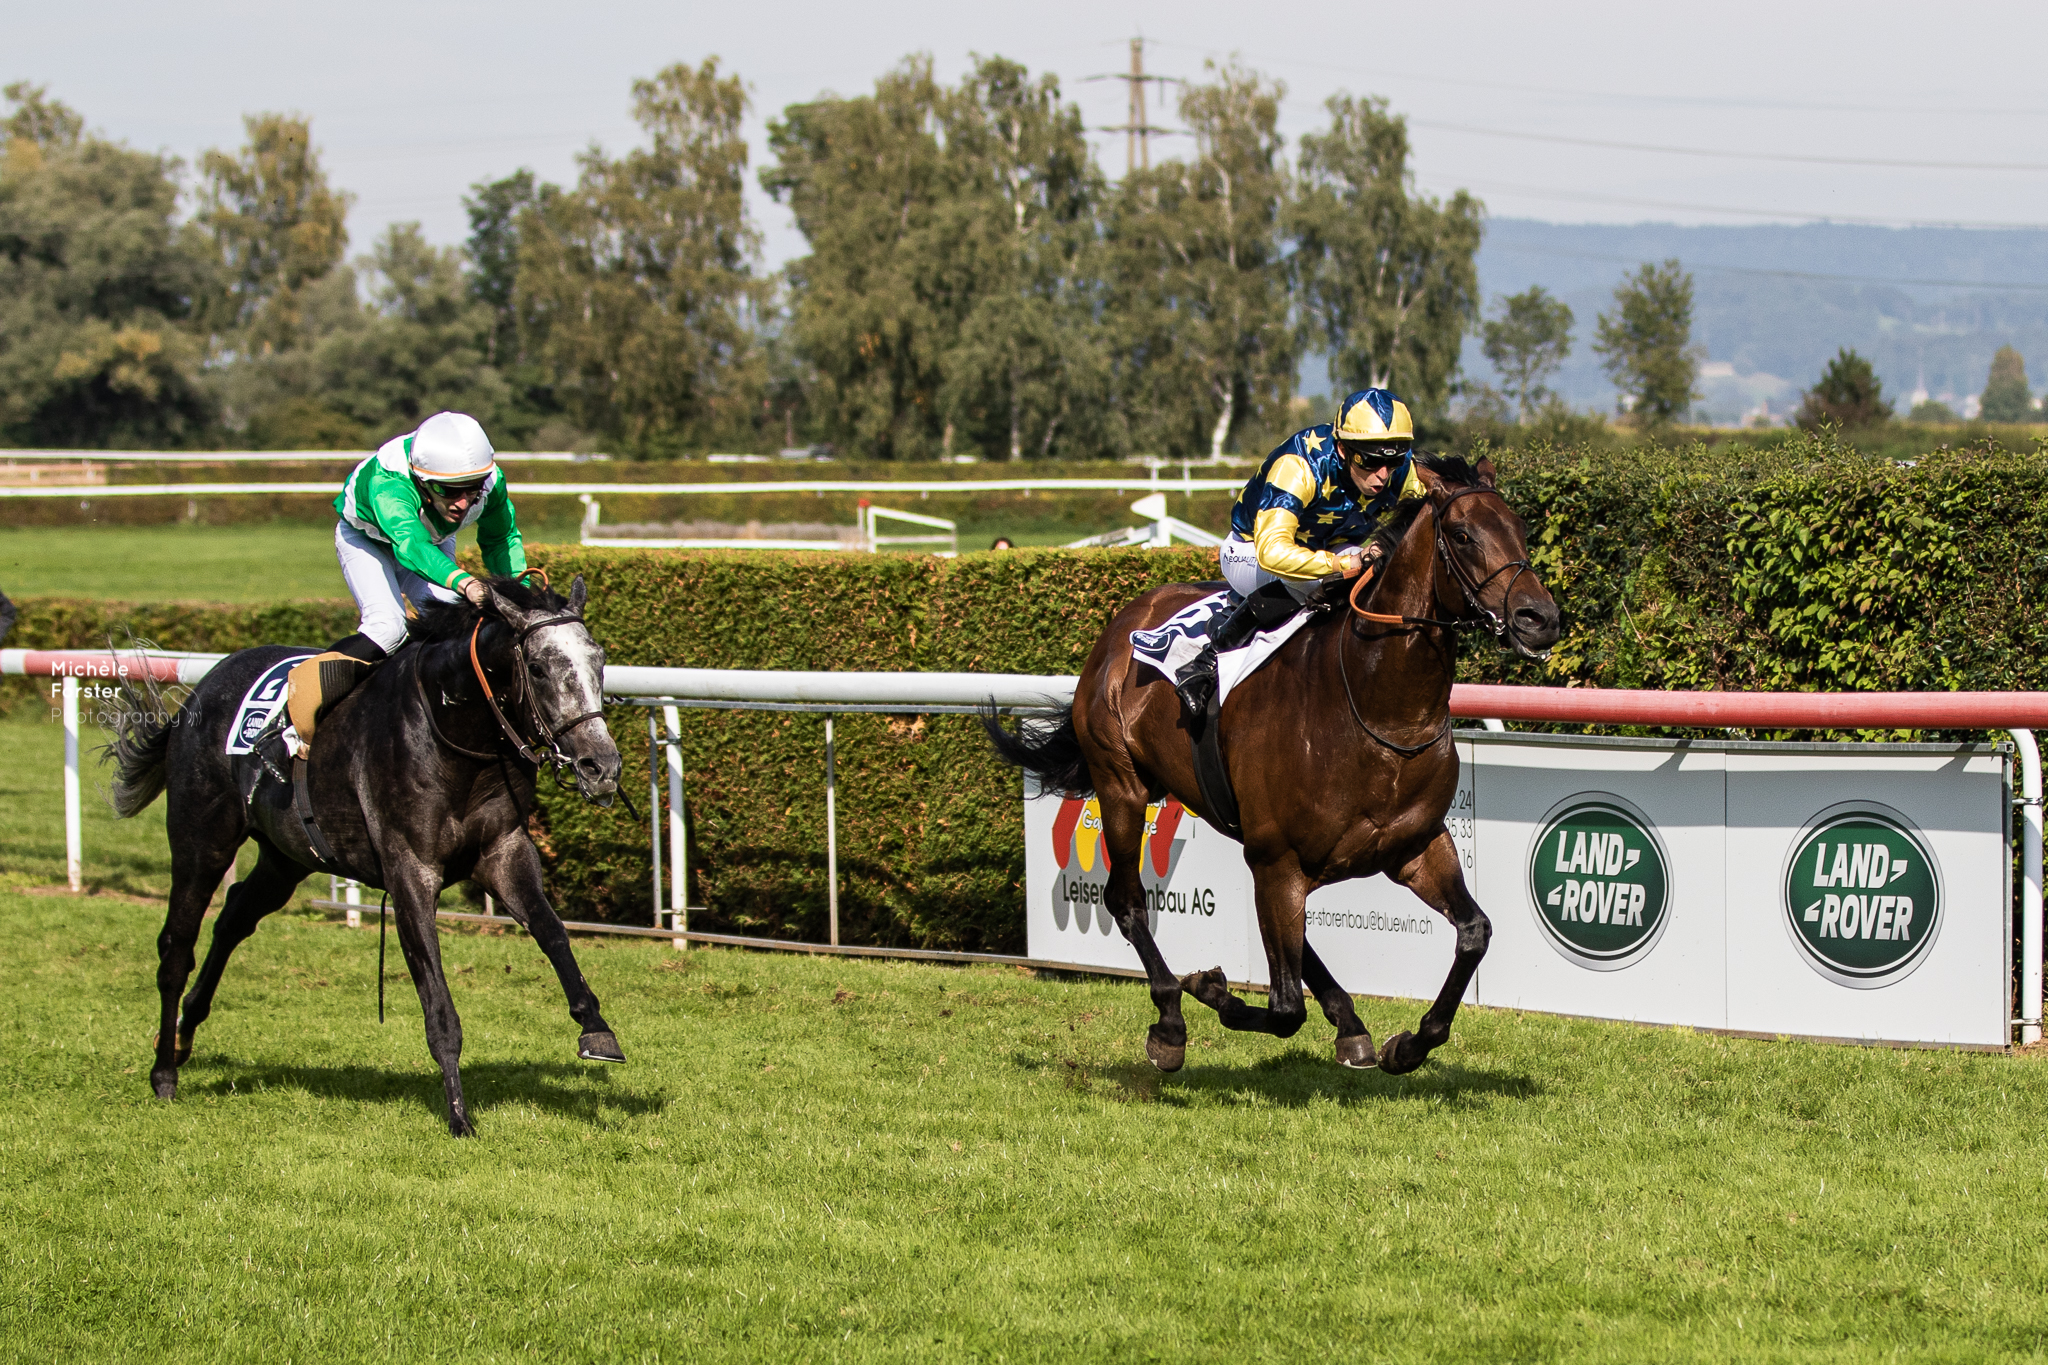 Land Rover - Jockey Club Renntag